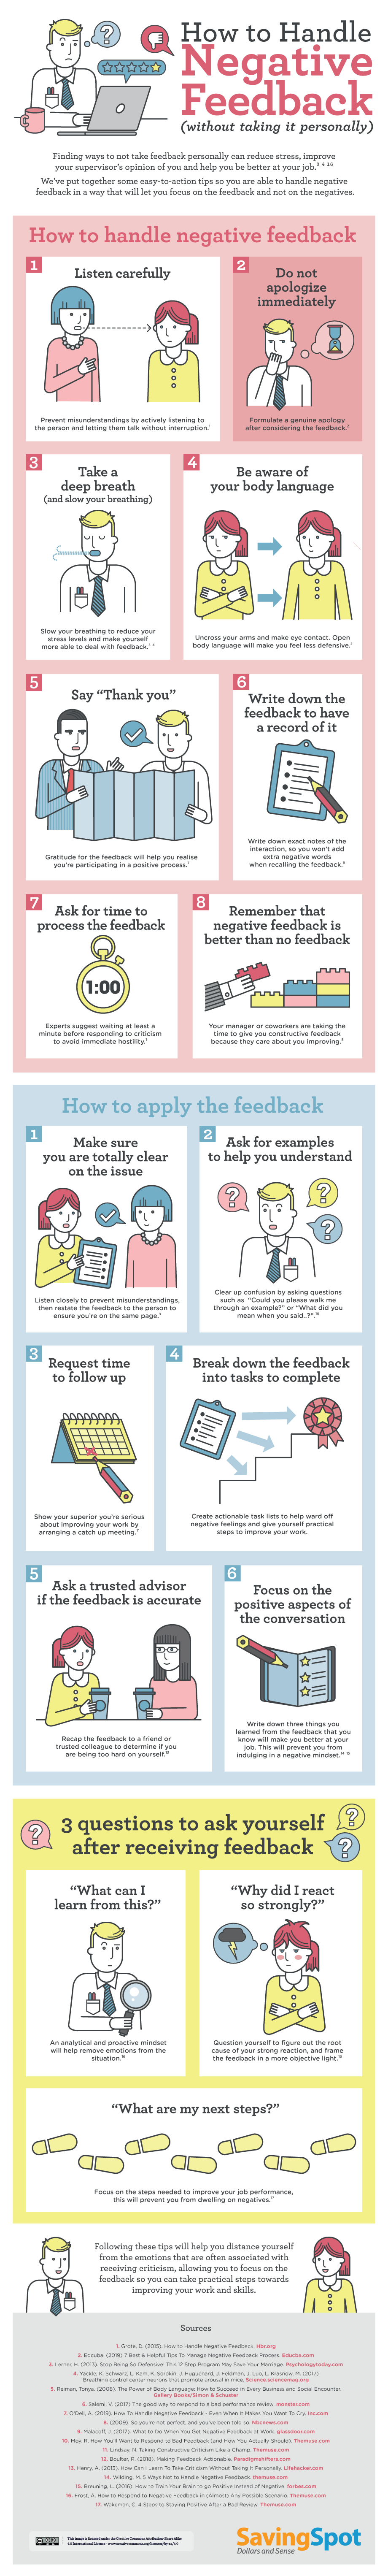 How to handle negative feedback infographic